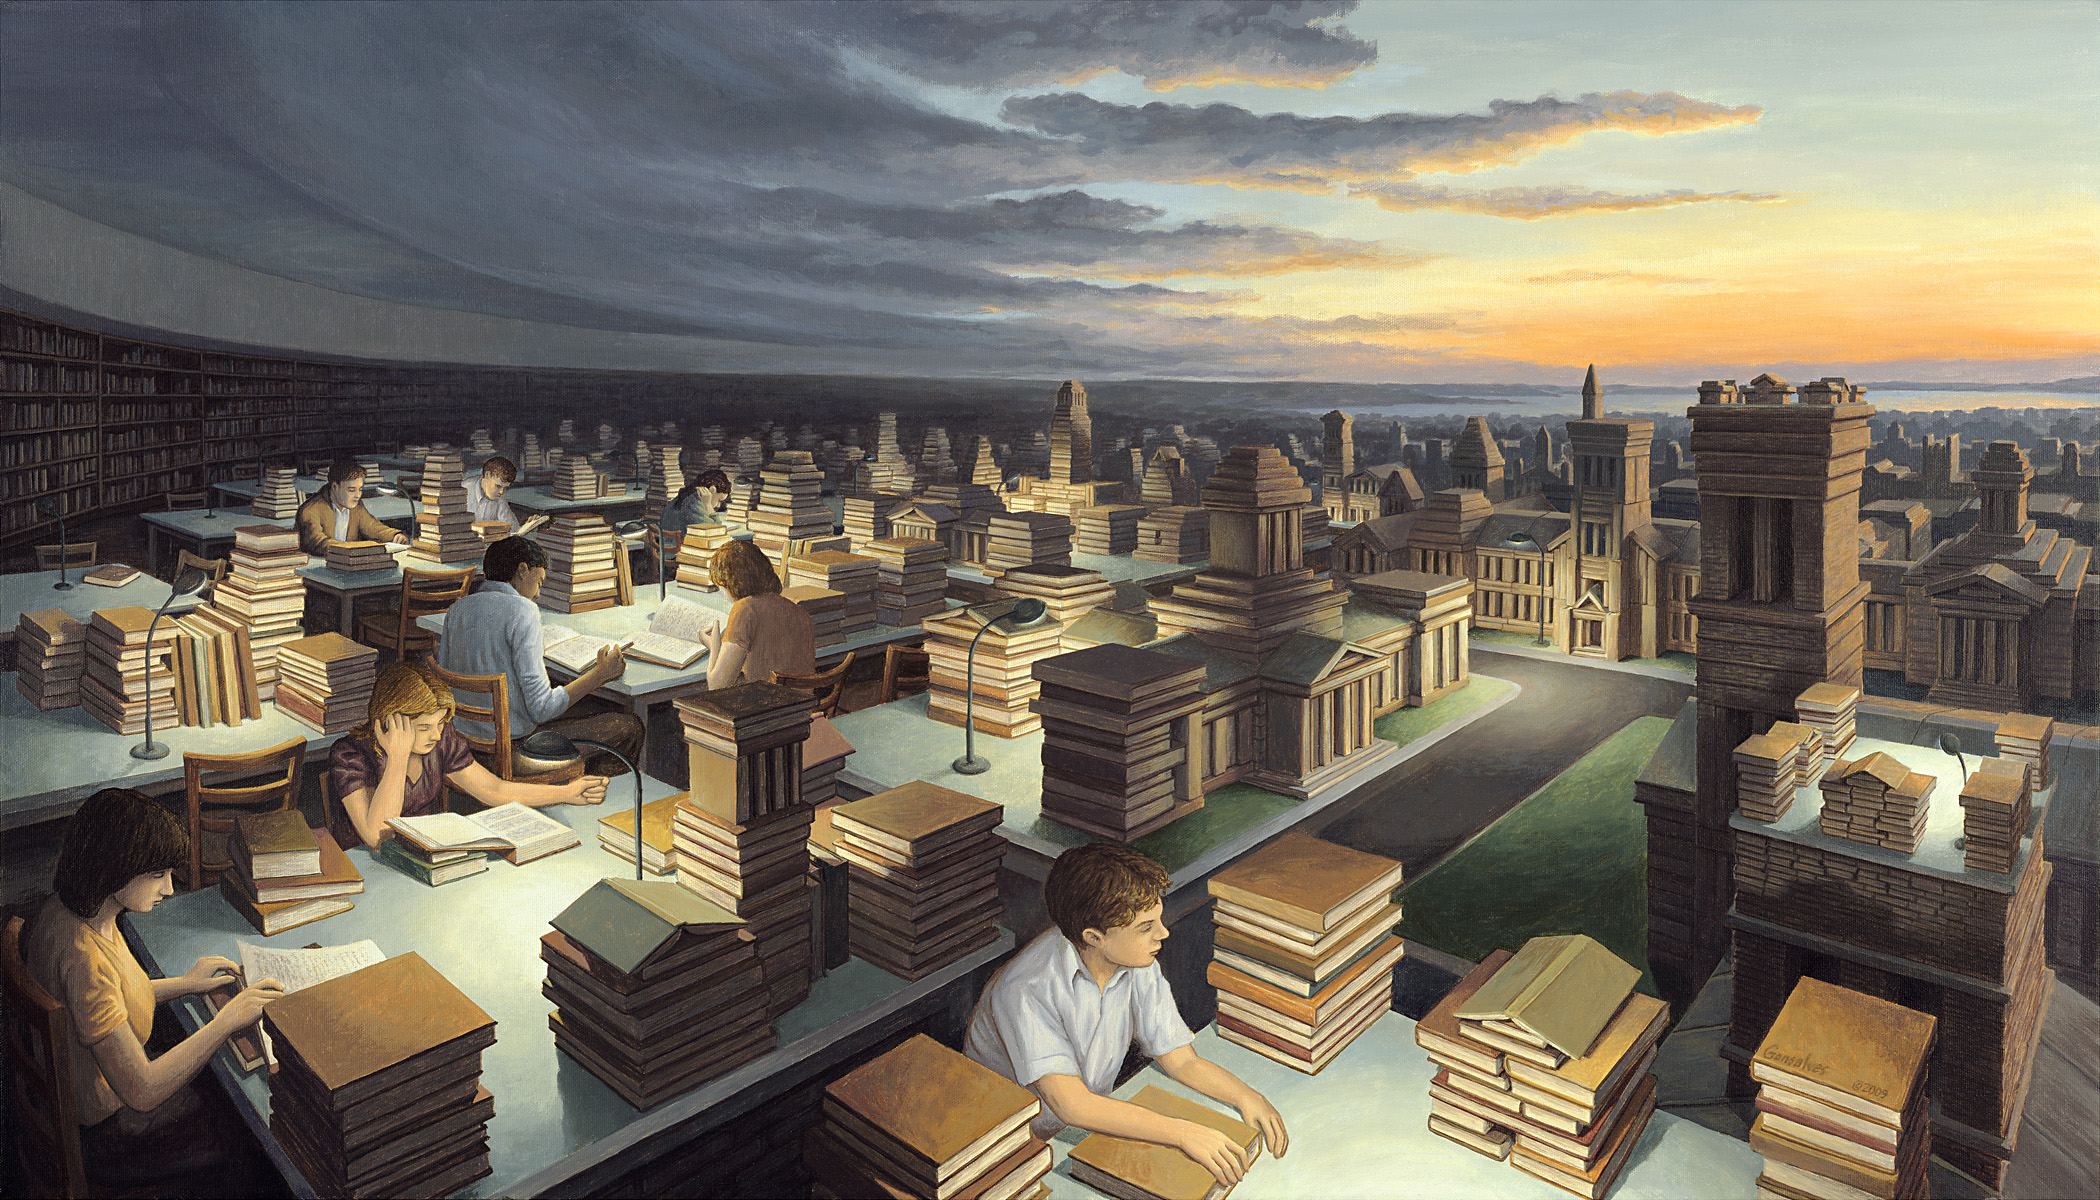 Towers Of Knowledge 187 Rob Gonsalves 187 Marcus Ashley Gallery